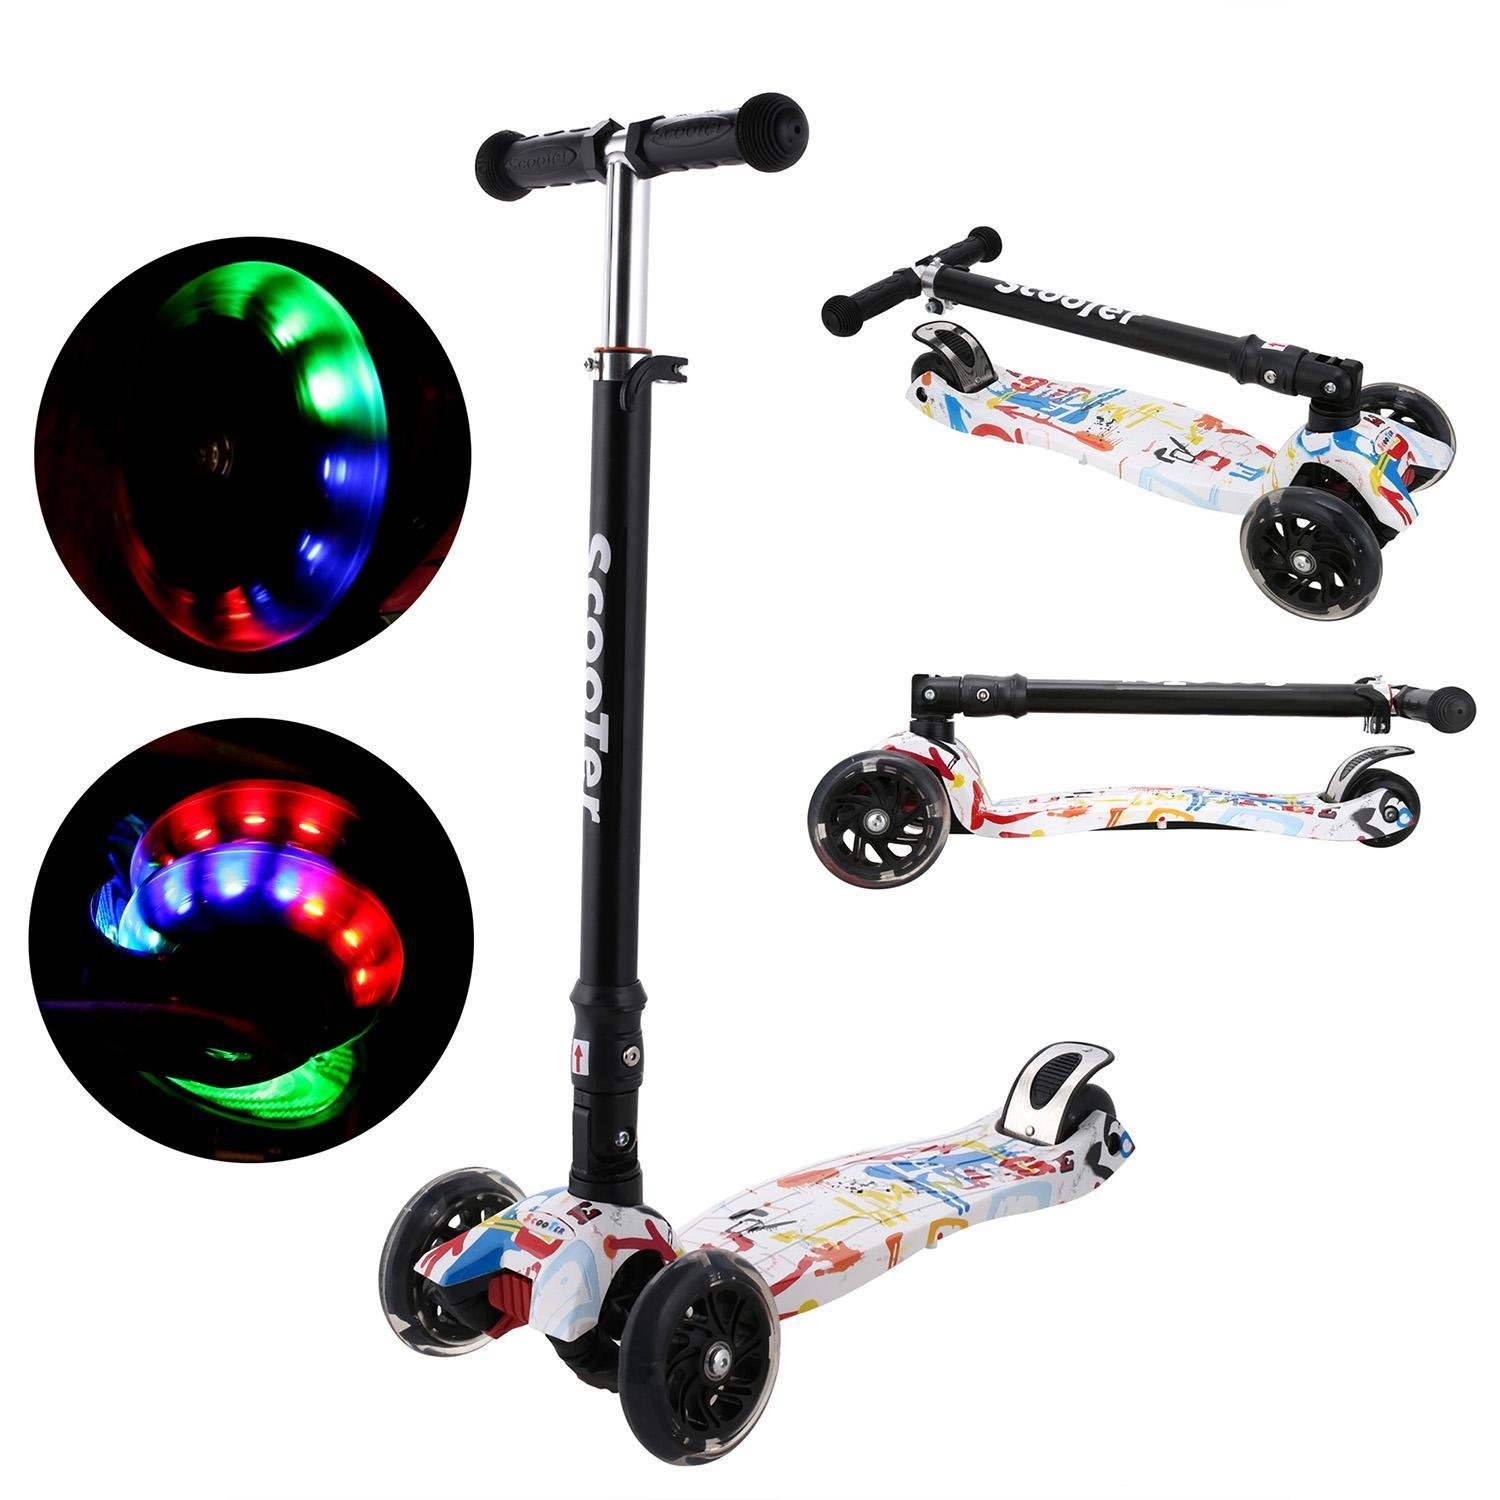 Hindom Kick Scooter 3 Wheels Adjustable Height Kids Scooters with LED Flashing Wheels Great Christmas Gift for Kids (US Stock)